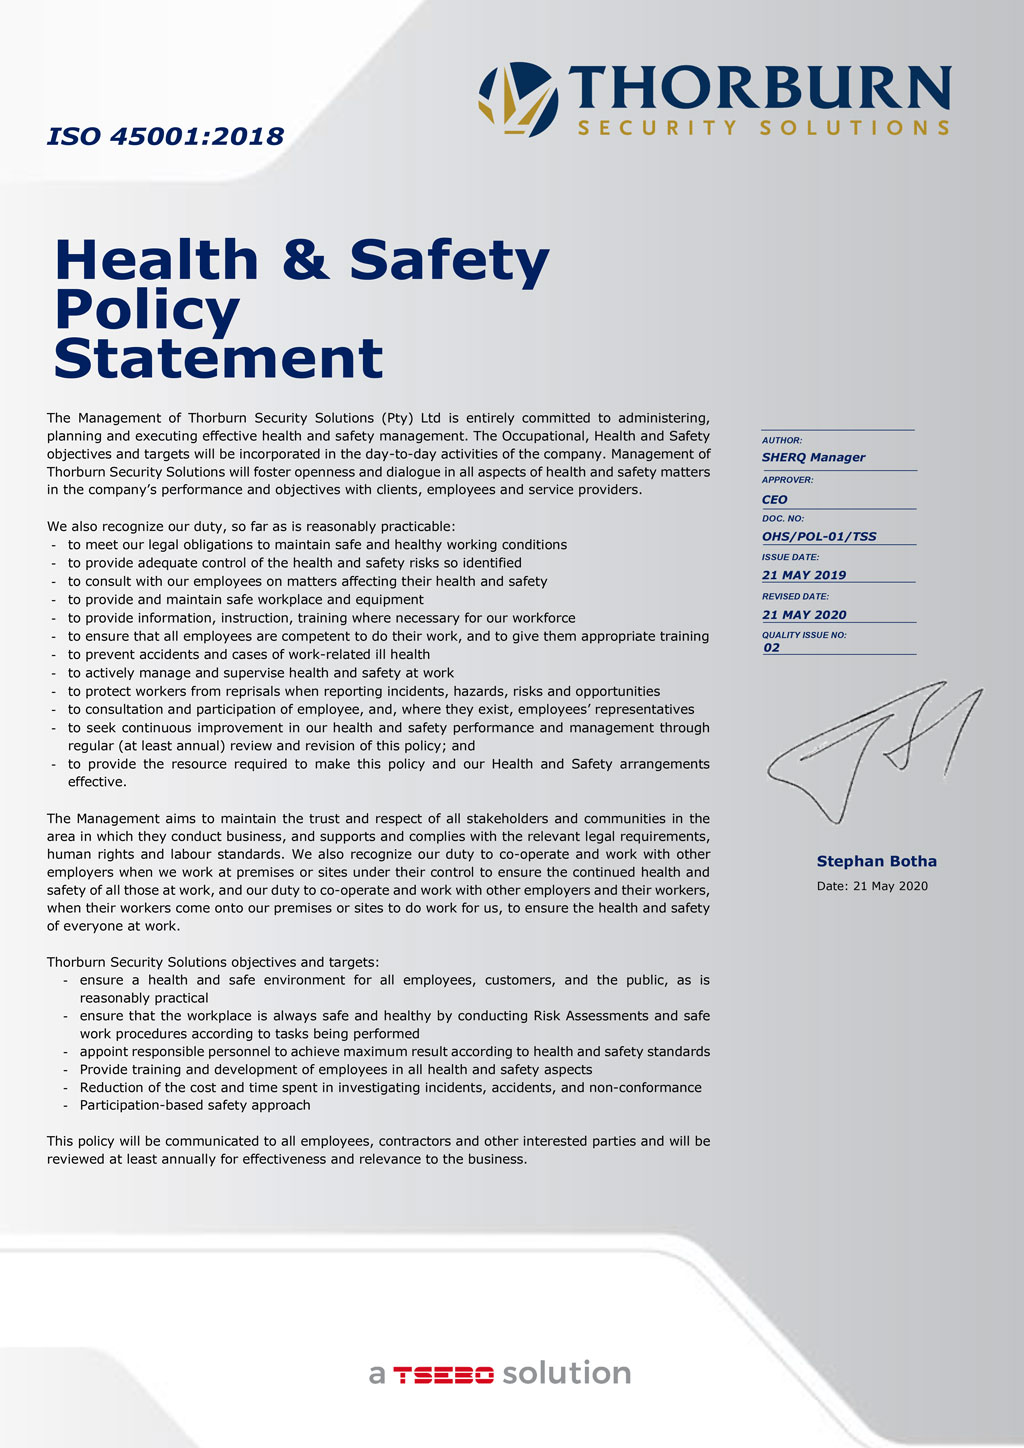 Thorburn Security Services South Africa - Our Values - Health & Safety Policy Statement